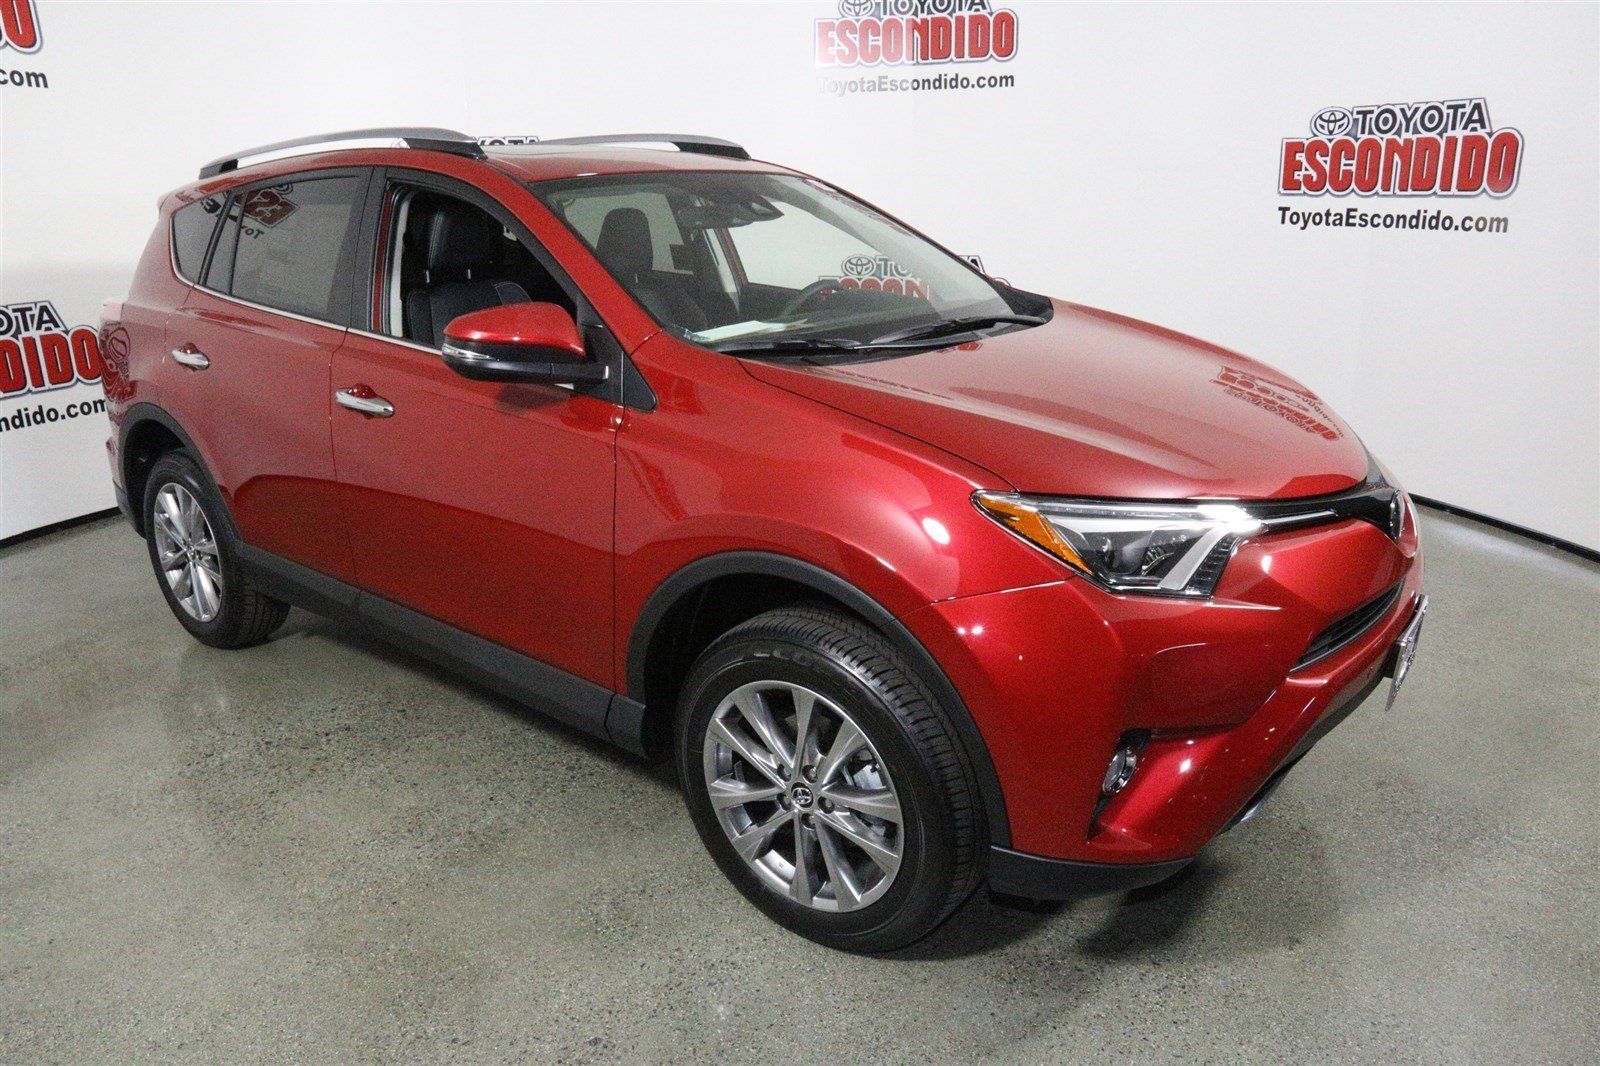 new 2017 toyota rav4 limited sport utility in escondido 1014141 toyota of escondido. Black Bedroom Furniture Sets. Home Design Ideas